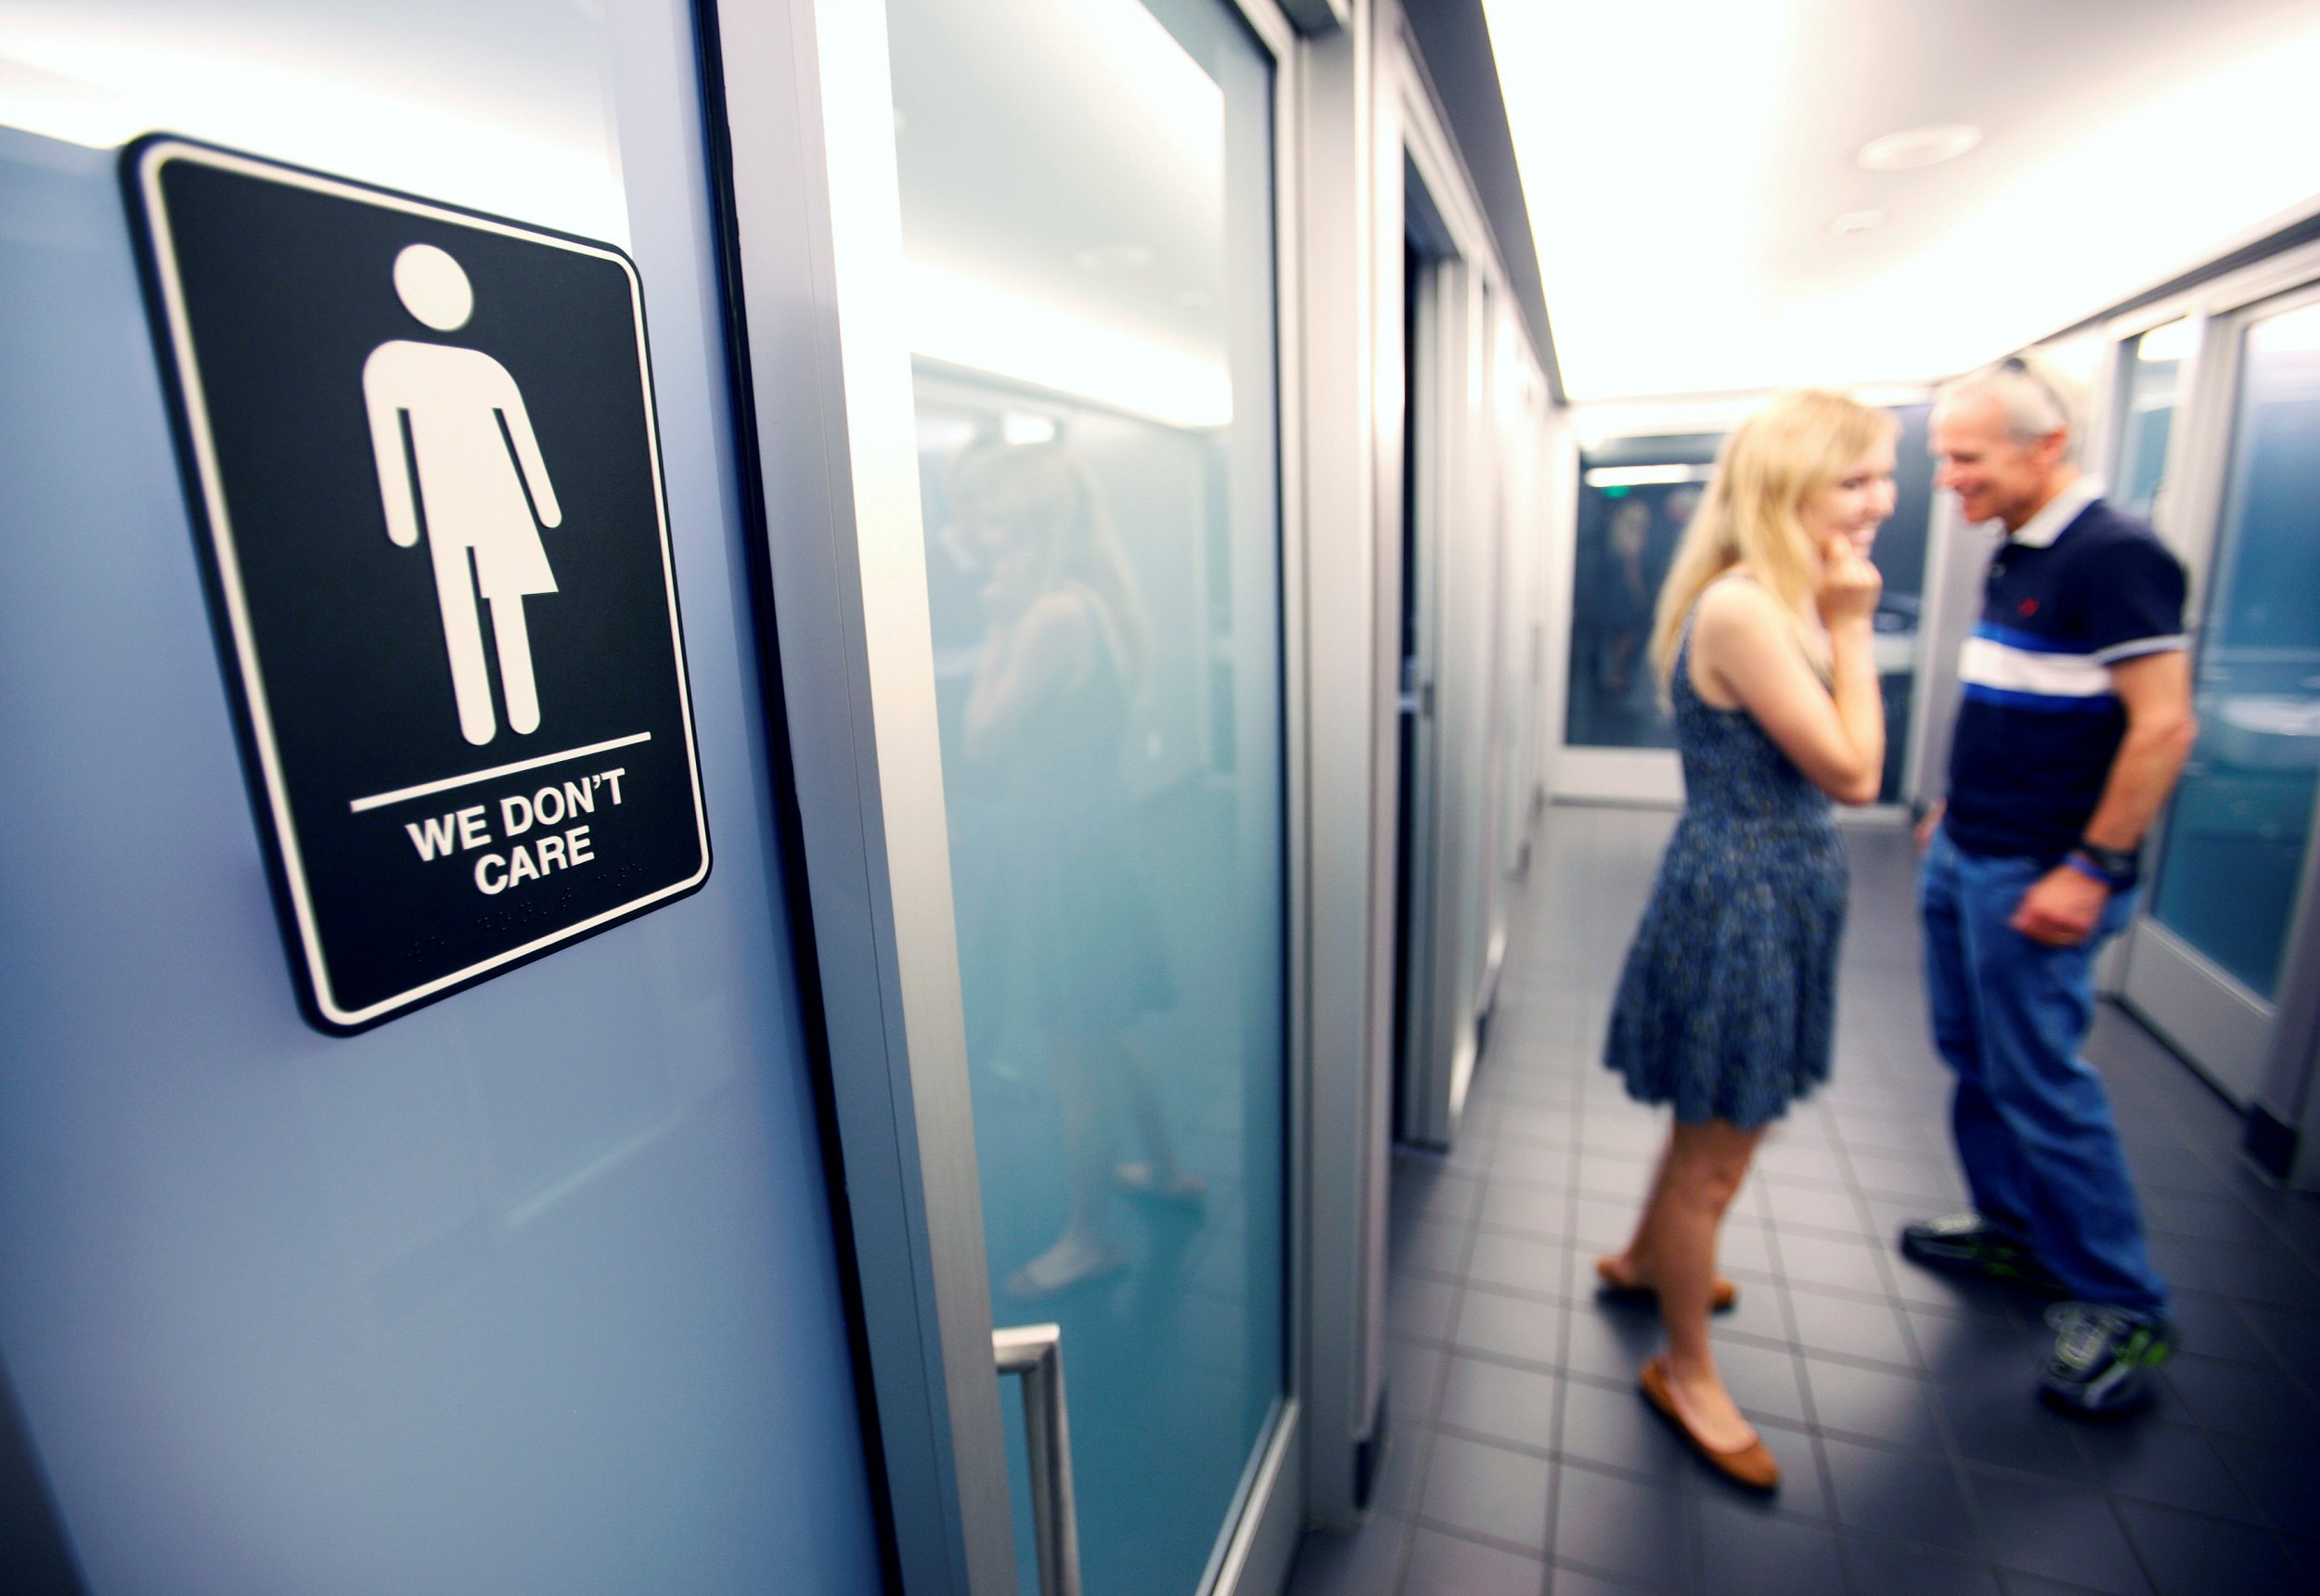 Transgender Rights Could Head to Supreme Court With Bathroom Law